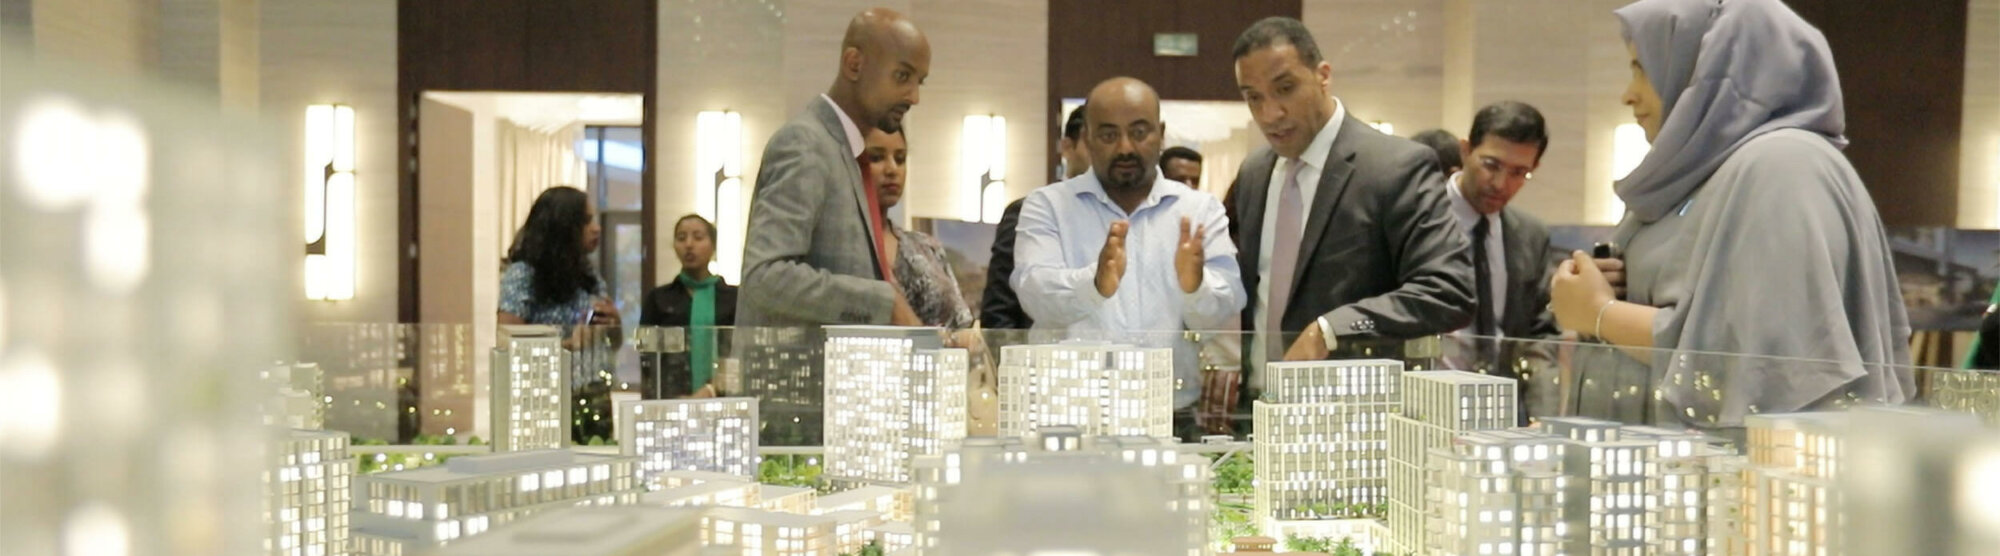 La Gare, one of Ethiopia's largest mixed-use developments